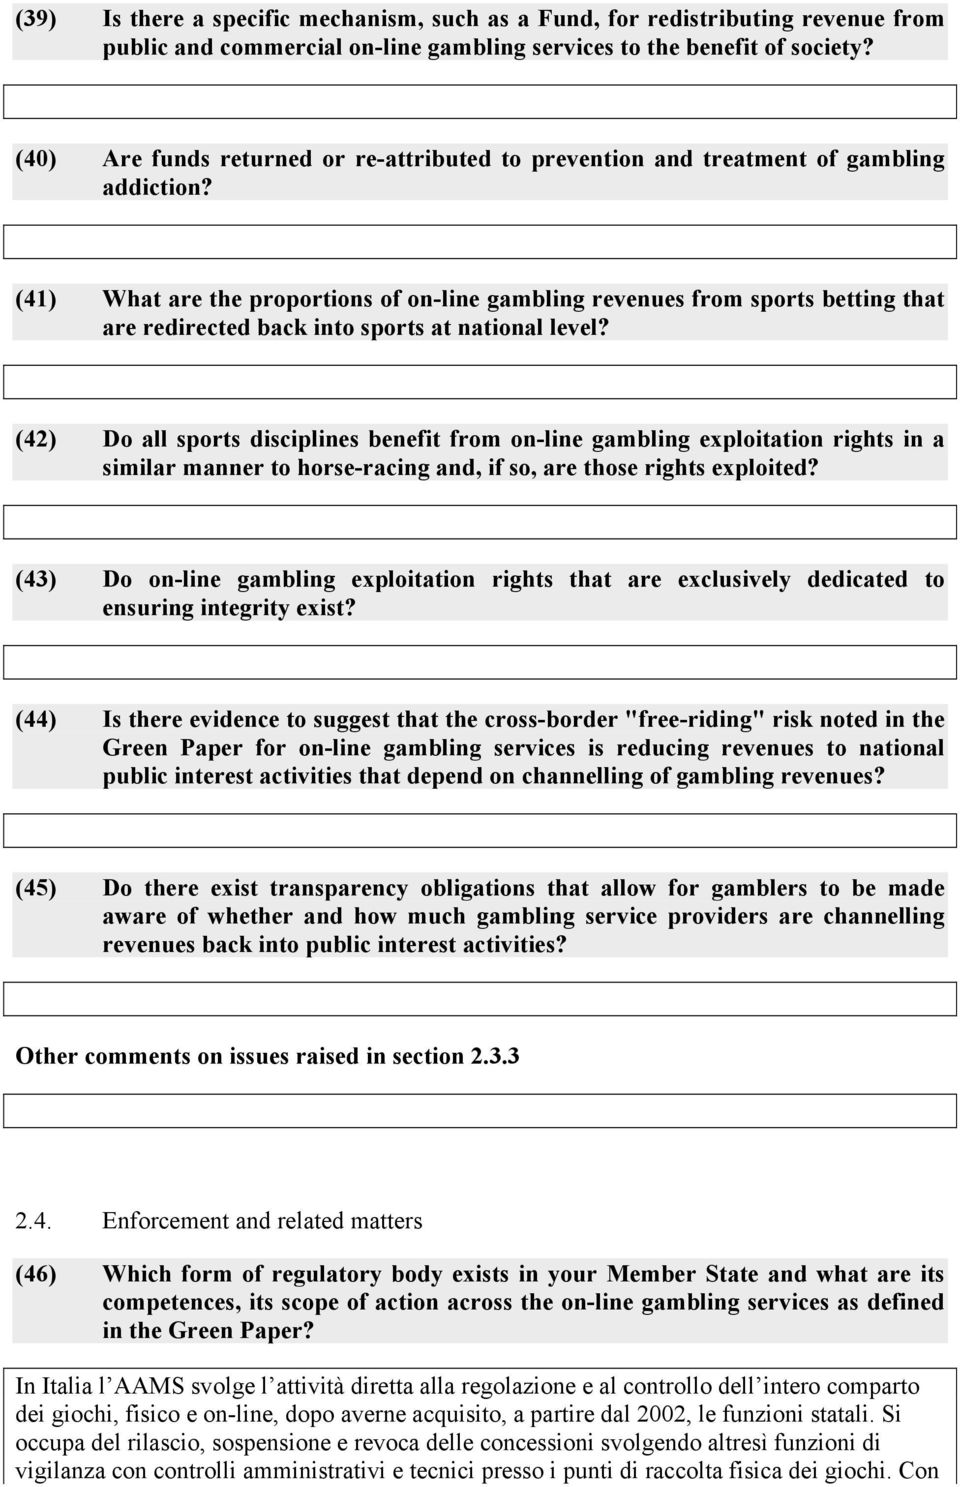 (41) What are the proportions of on-line gambling revenues from sports betting that are redirected back into sports at national level?